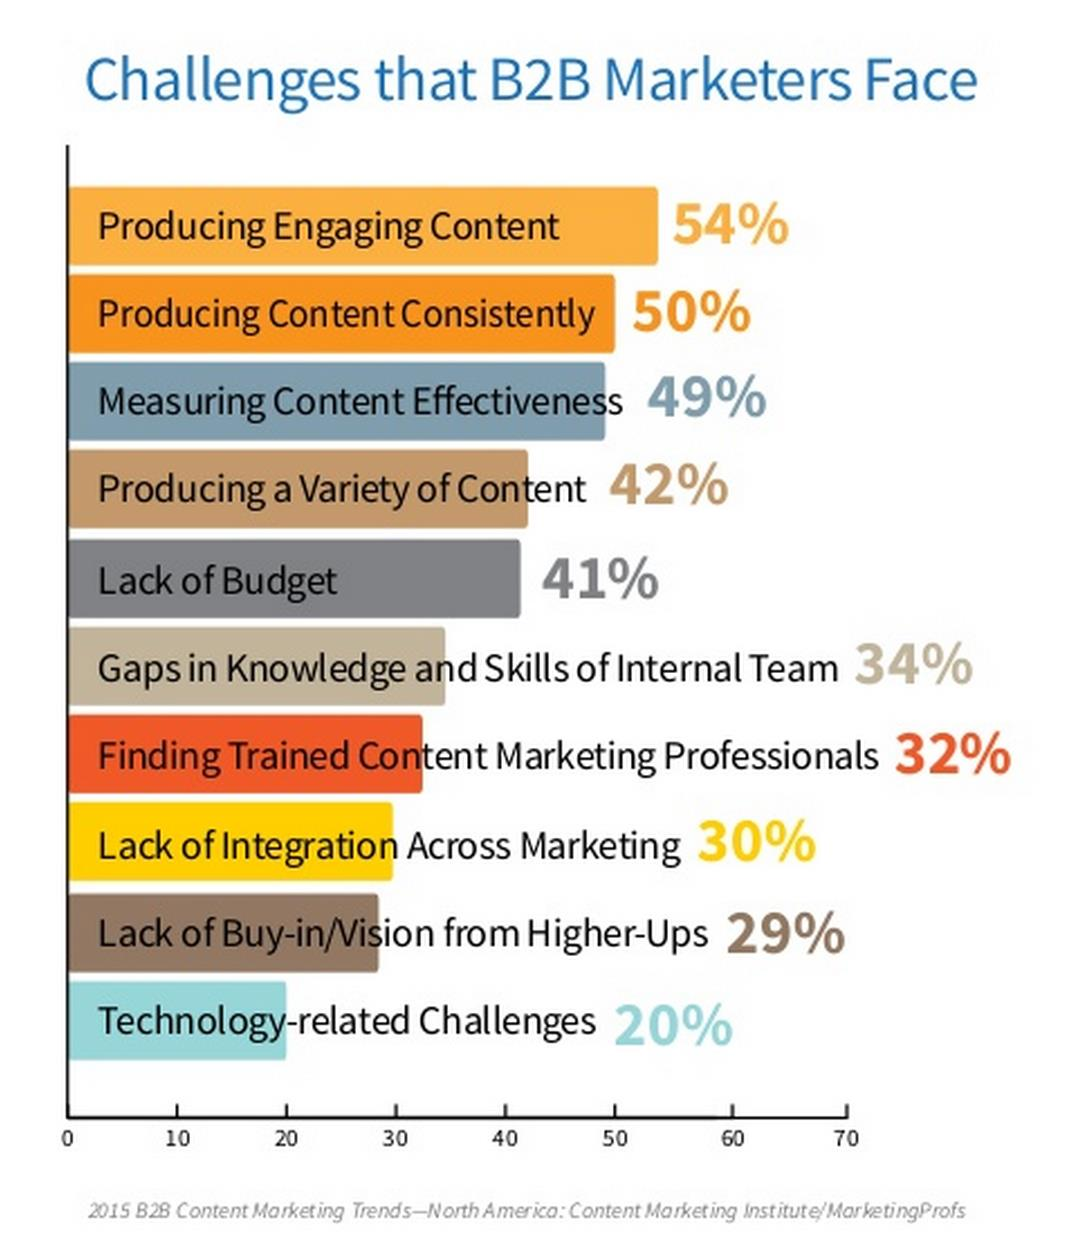 Challenges That B2B Marketers Face Survey Chart